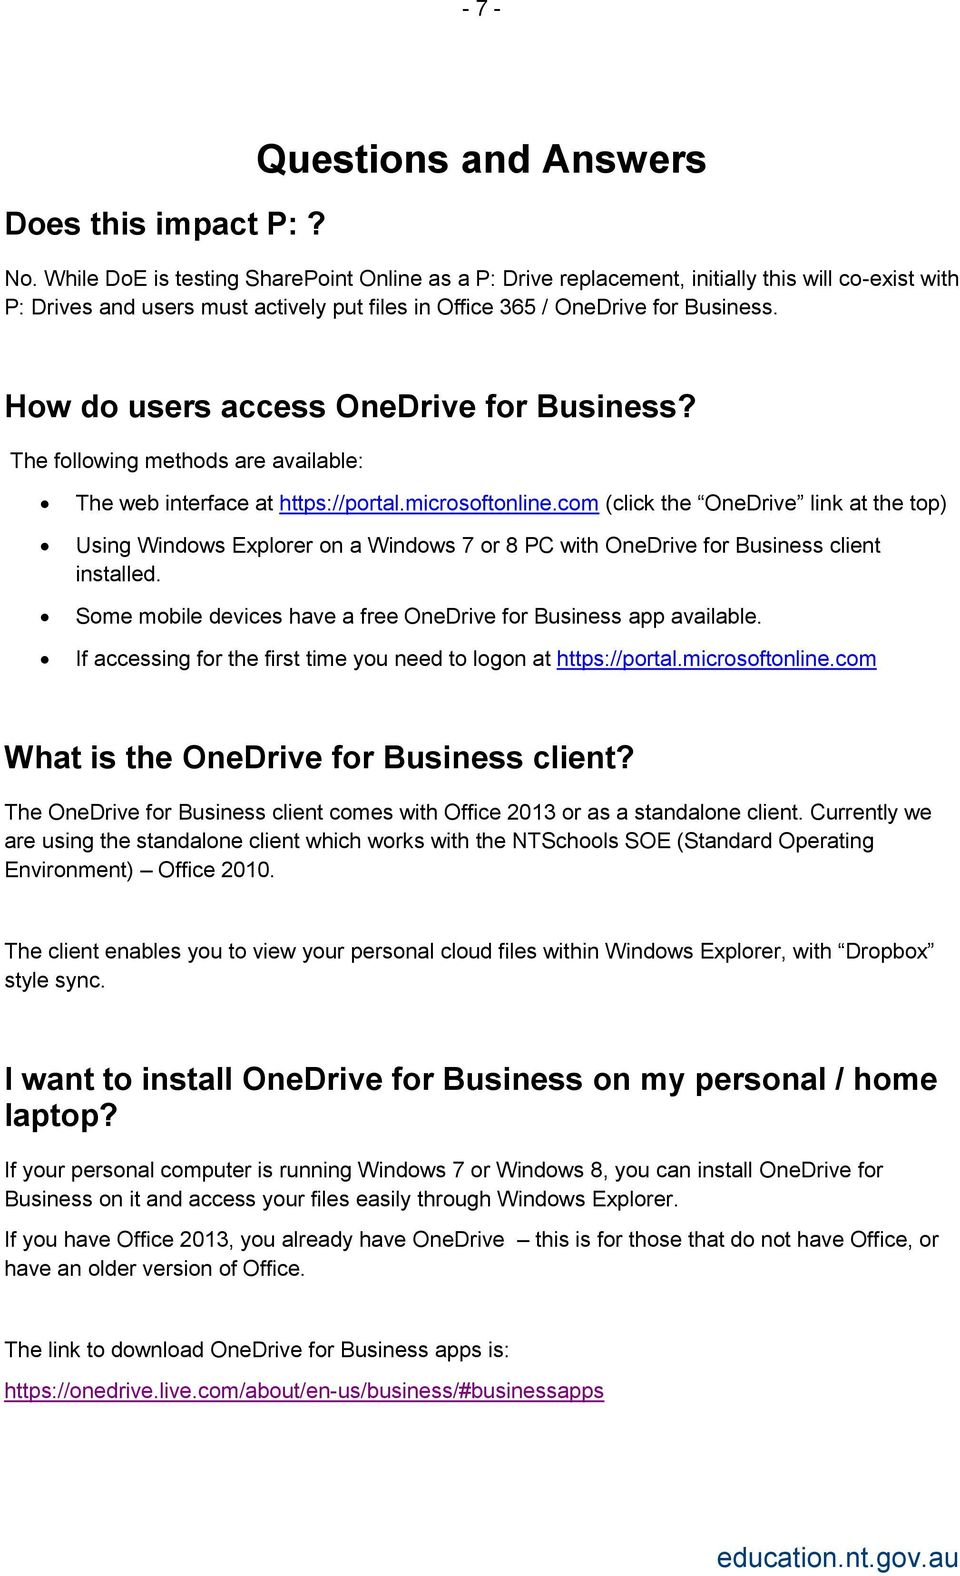 How do users access OneDrive for Business? The following methods are available: The web interface at https://portal.microsoftonline.